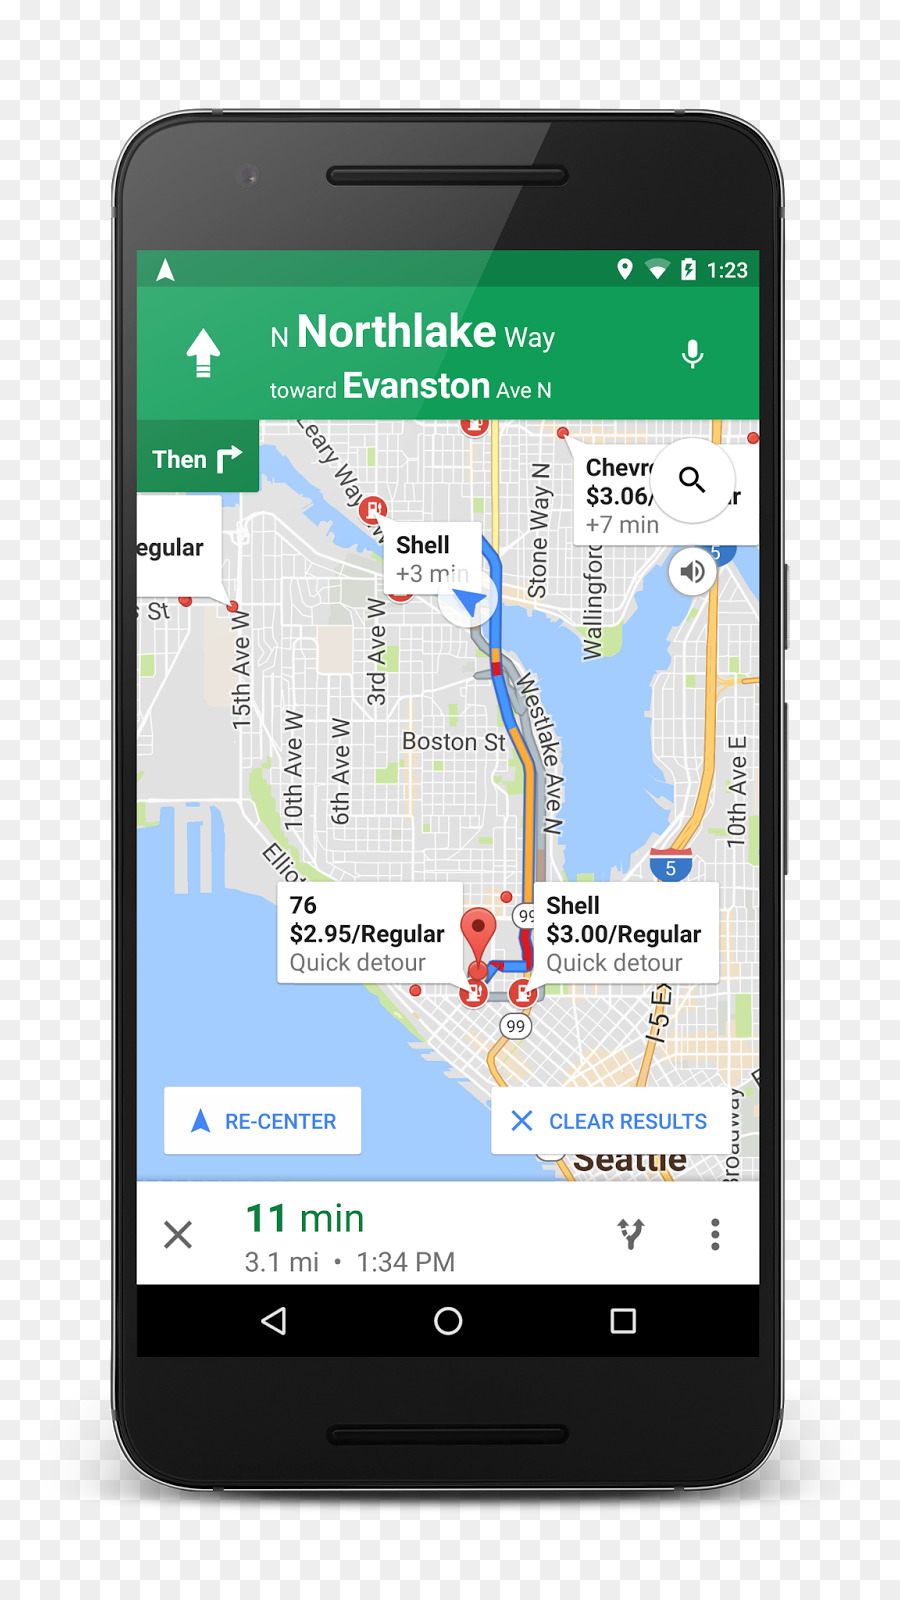 Google Maps Mobile Phone png download - 896*1600 - Free Transparent